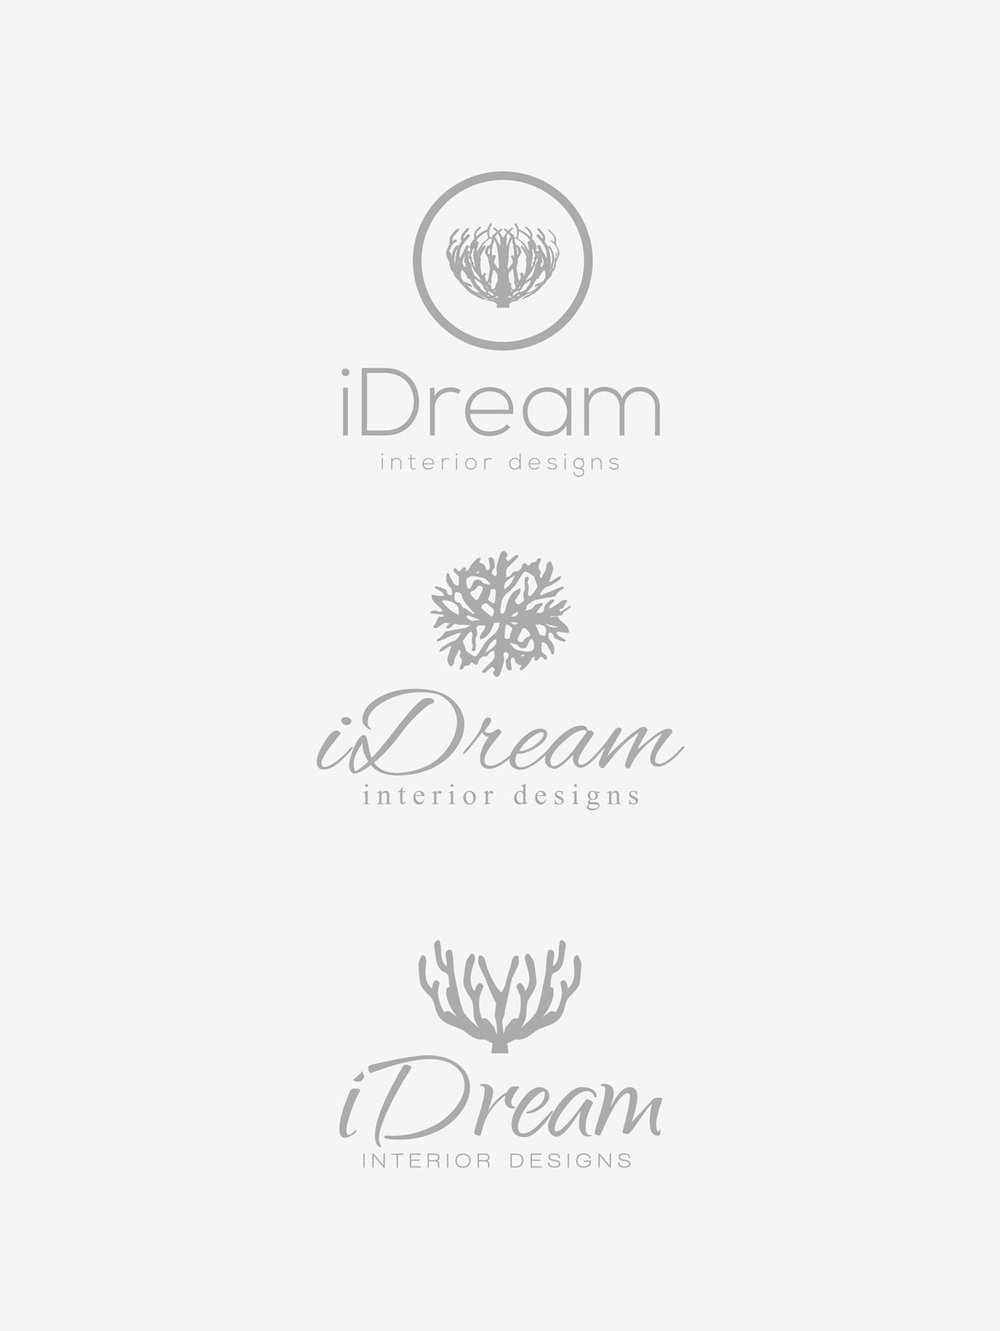 iDream-Interior-Designs-Logo-Concepts.jpg